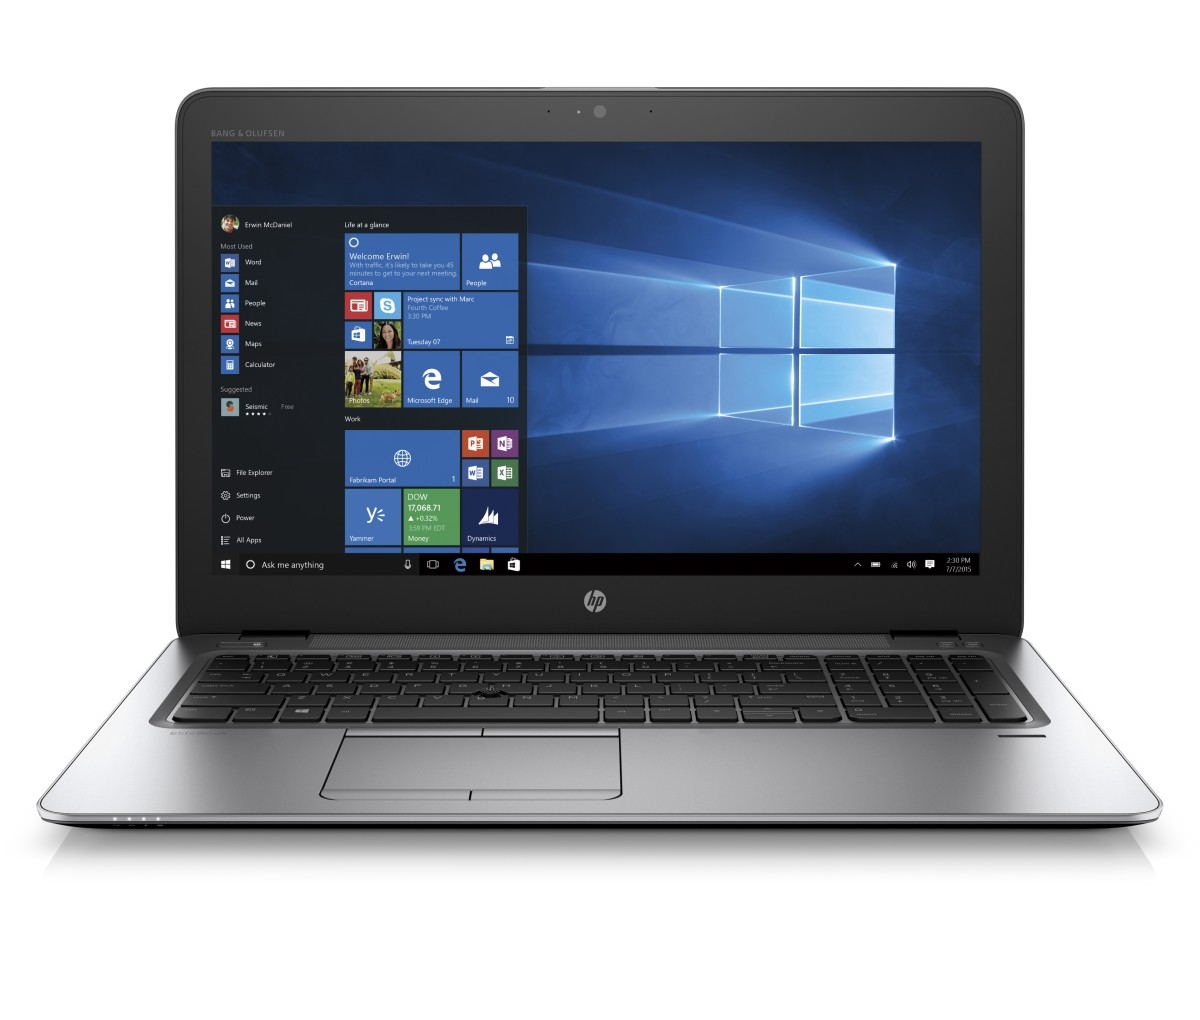 HP EliteBook 850 G4 i5-7200U/4GB/256GB SSD + 2,5'' slot/15,6'' FHD/backlit keyb/Win 10 Pro